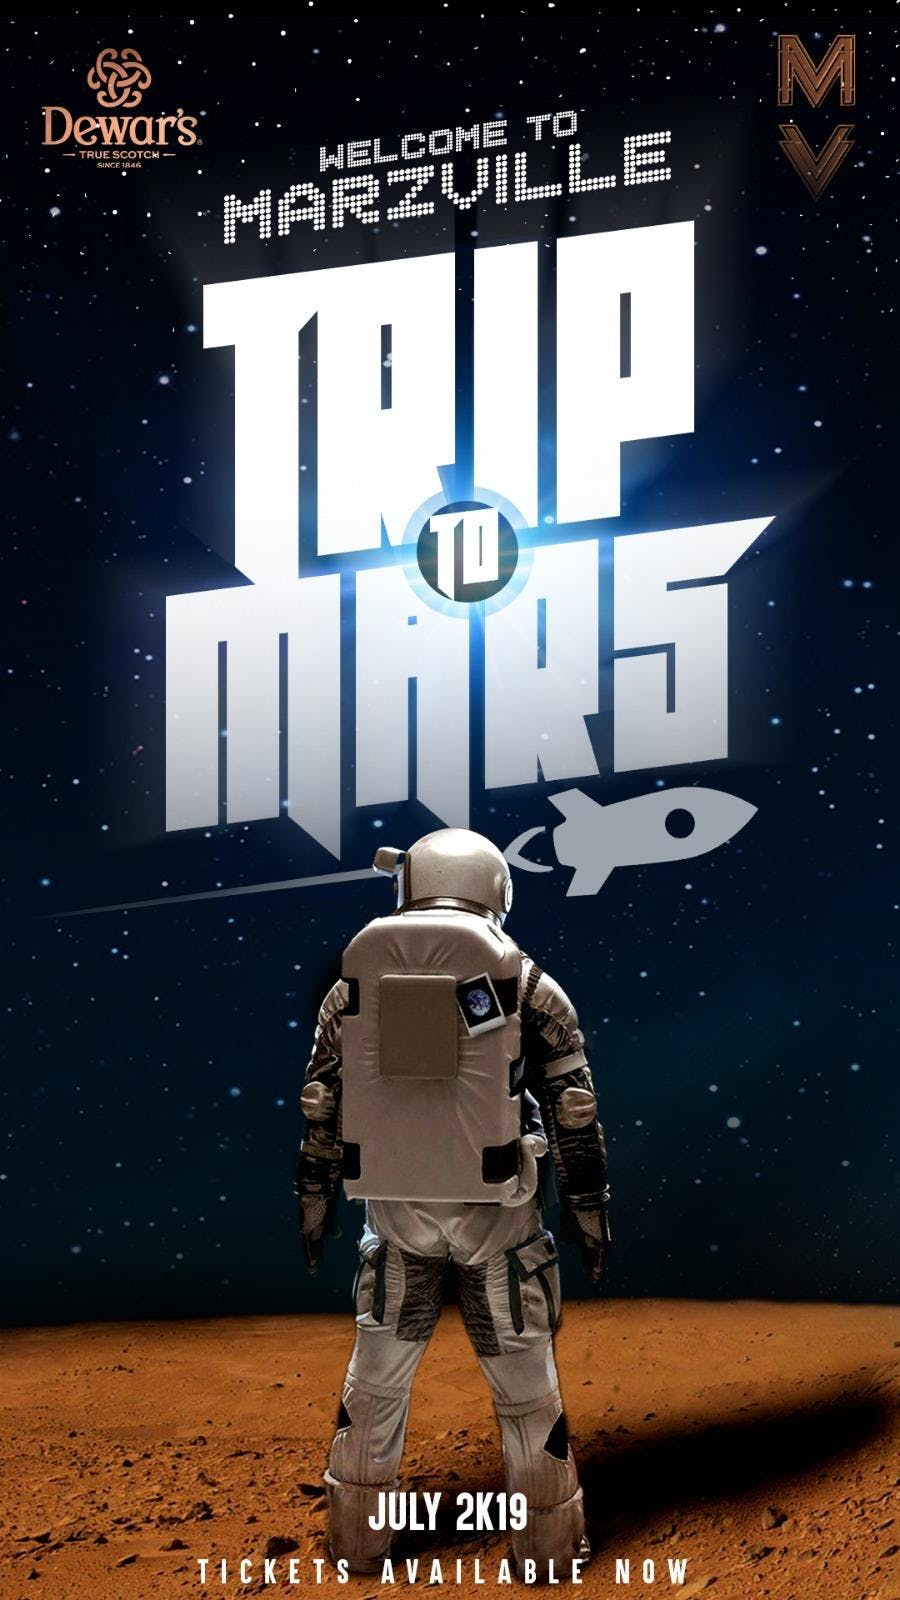 Welcome To Marz Ville, Trip To Mars